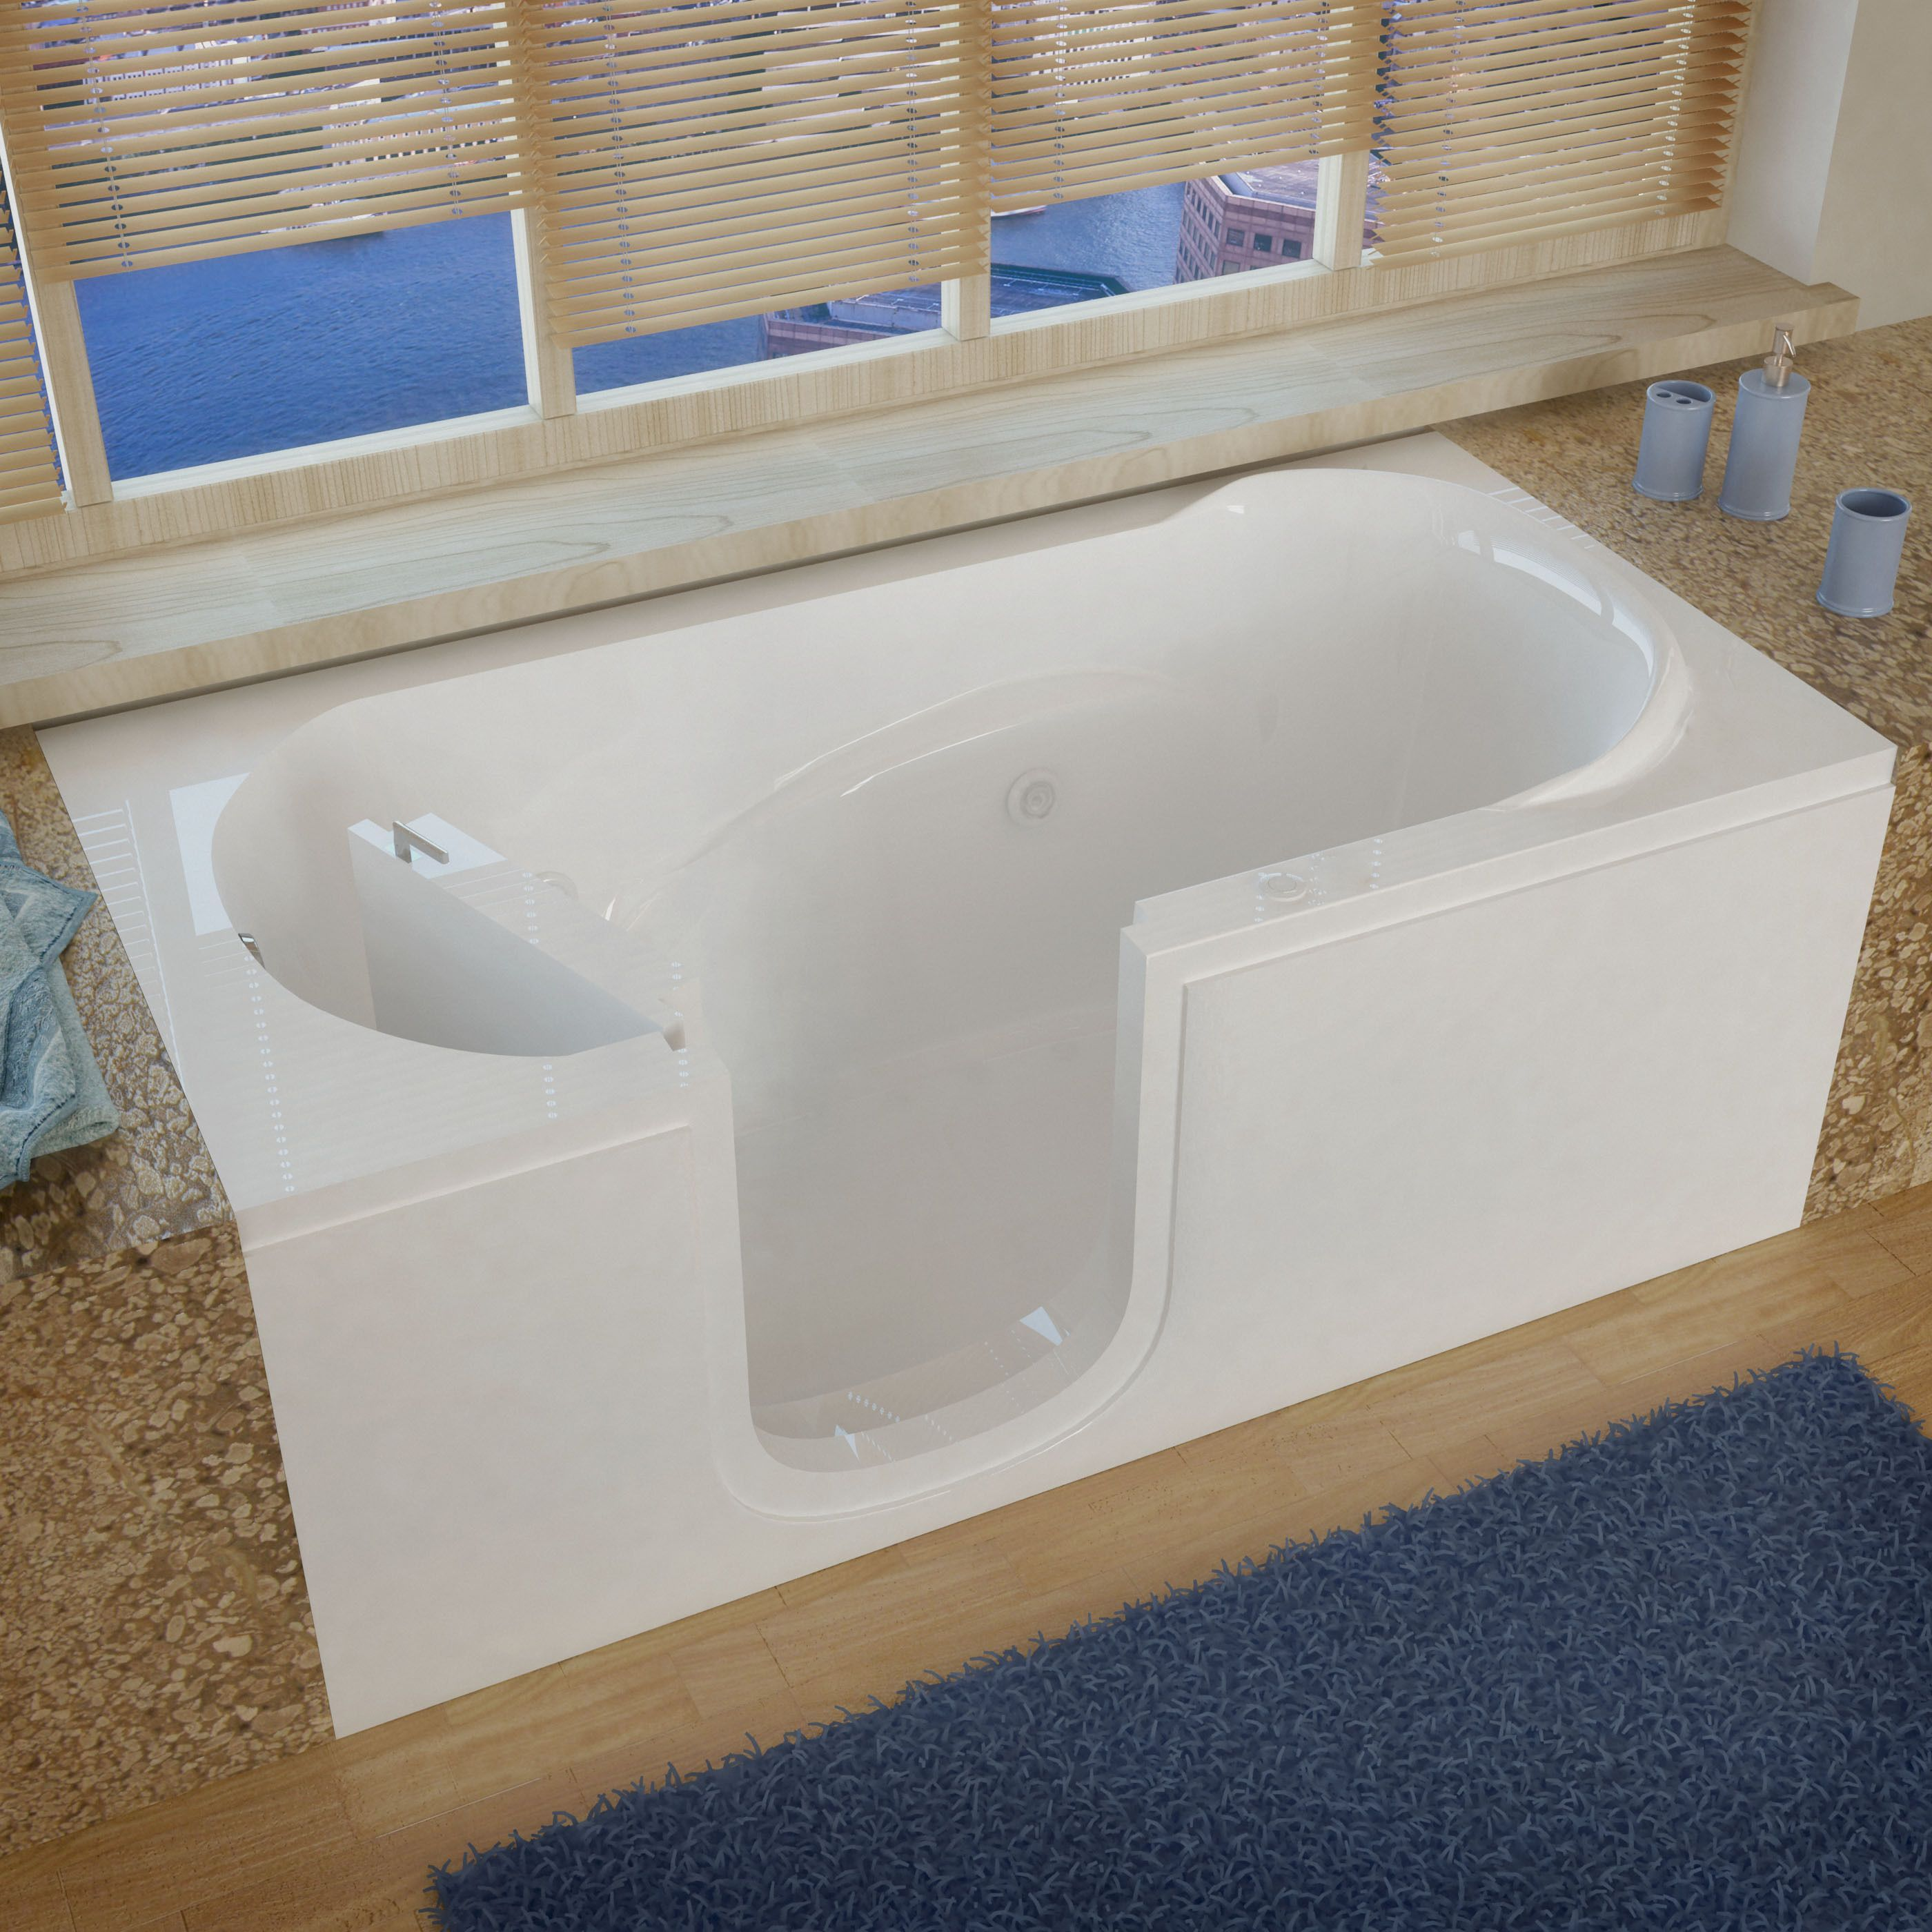 MediTub Step-In 30x60-inch Left Drain White Whirlpool Jetted Step-In ...